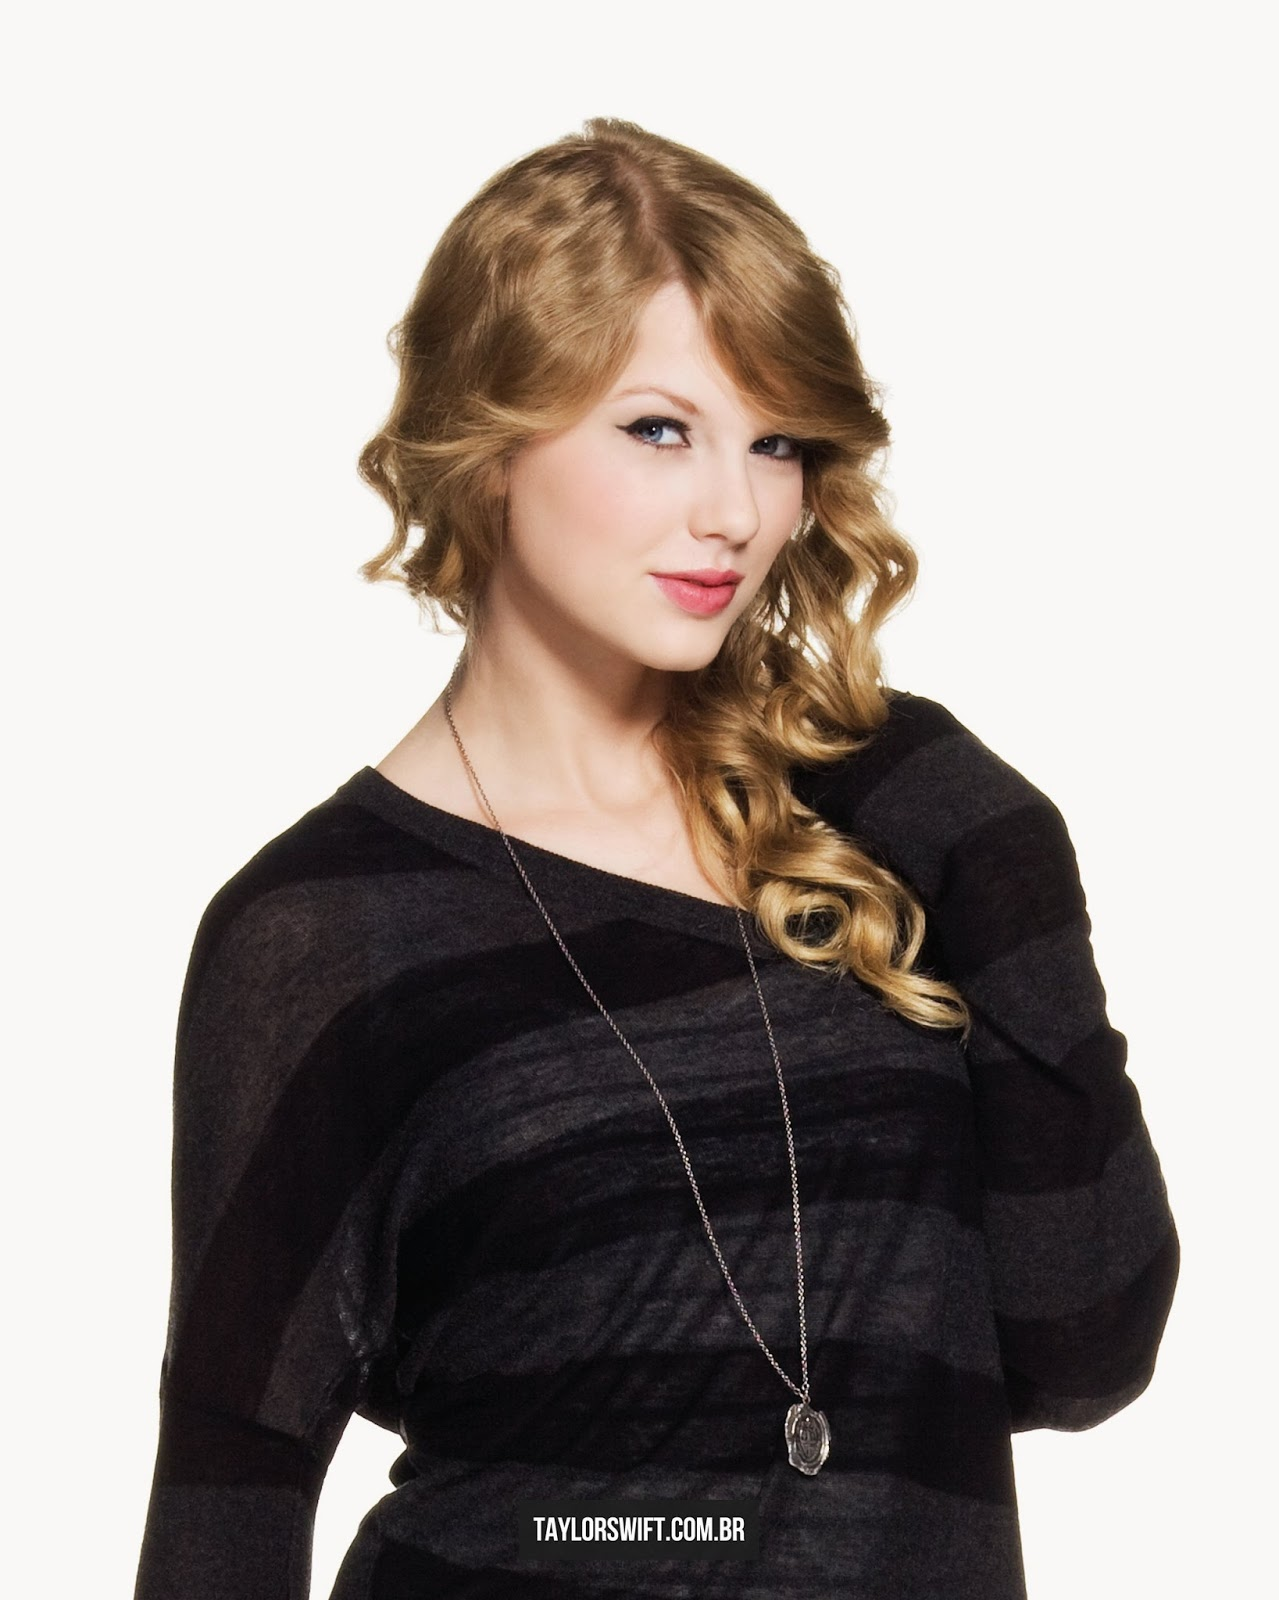 Taylor Swift dan Lagu Country